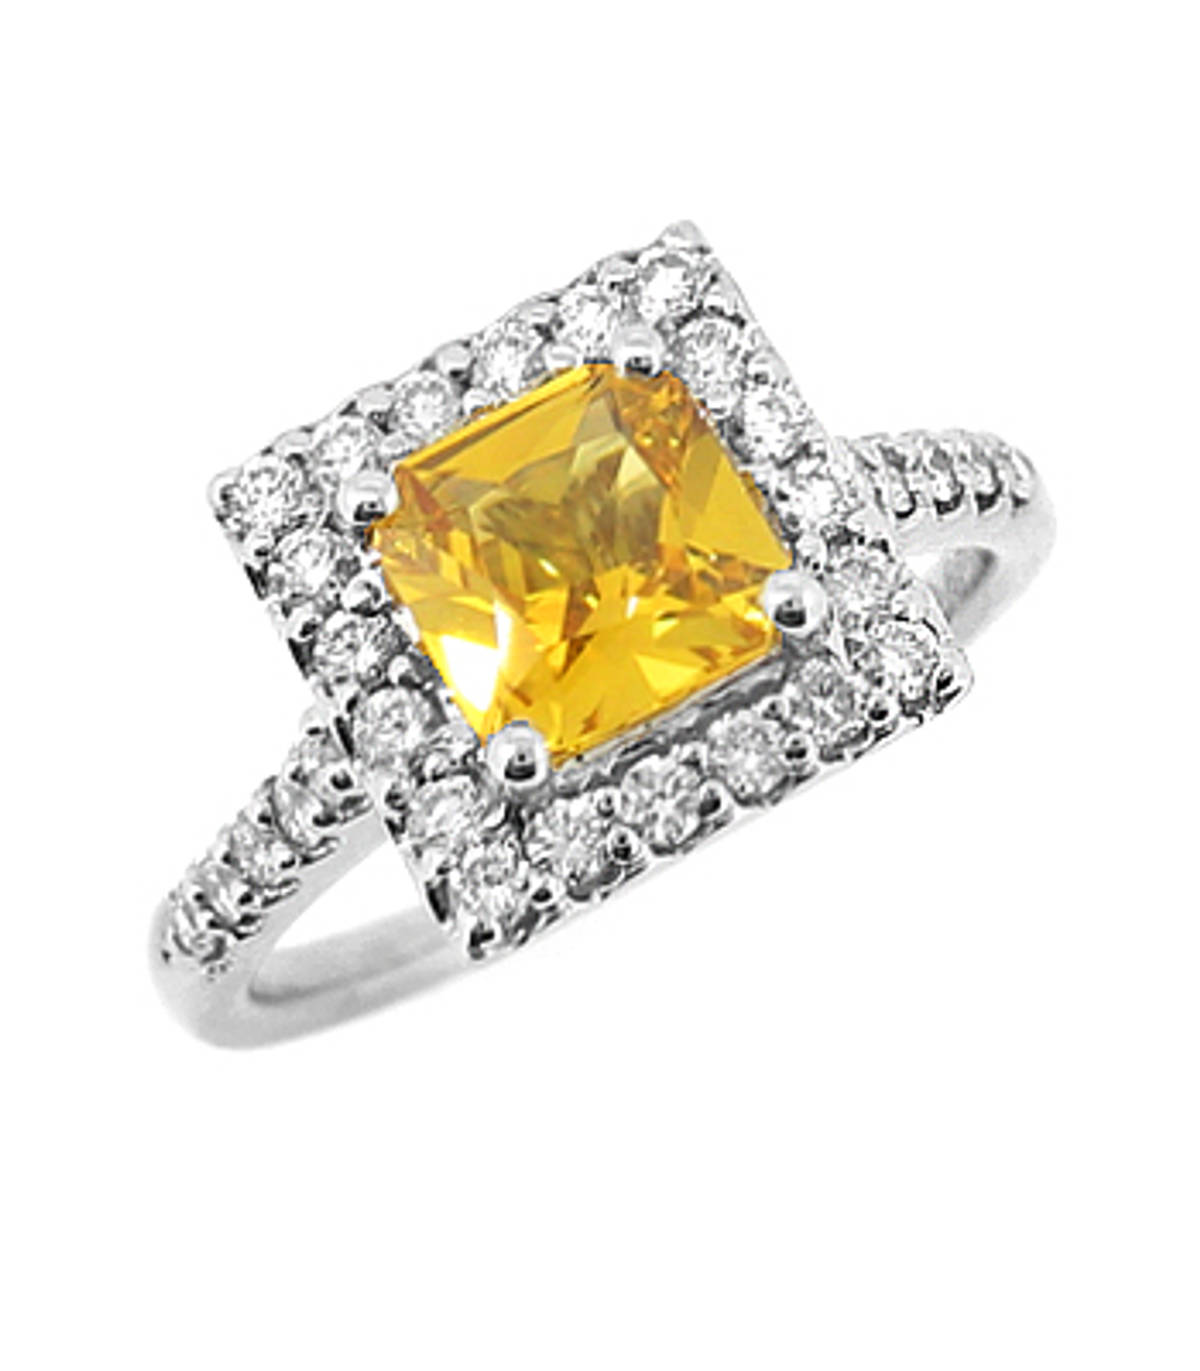 Yellow sapphire and diamond cluster ringPictured item: 1.04ct yellow sapphire/0.38ct diamond set in 18k white gold